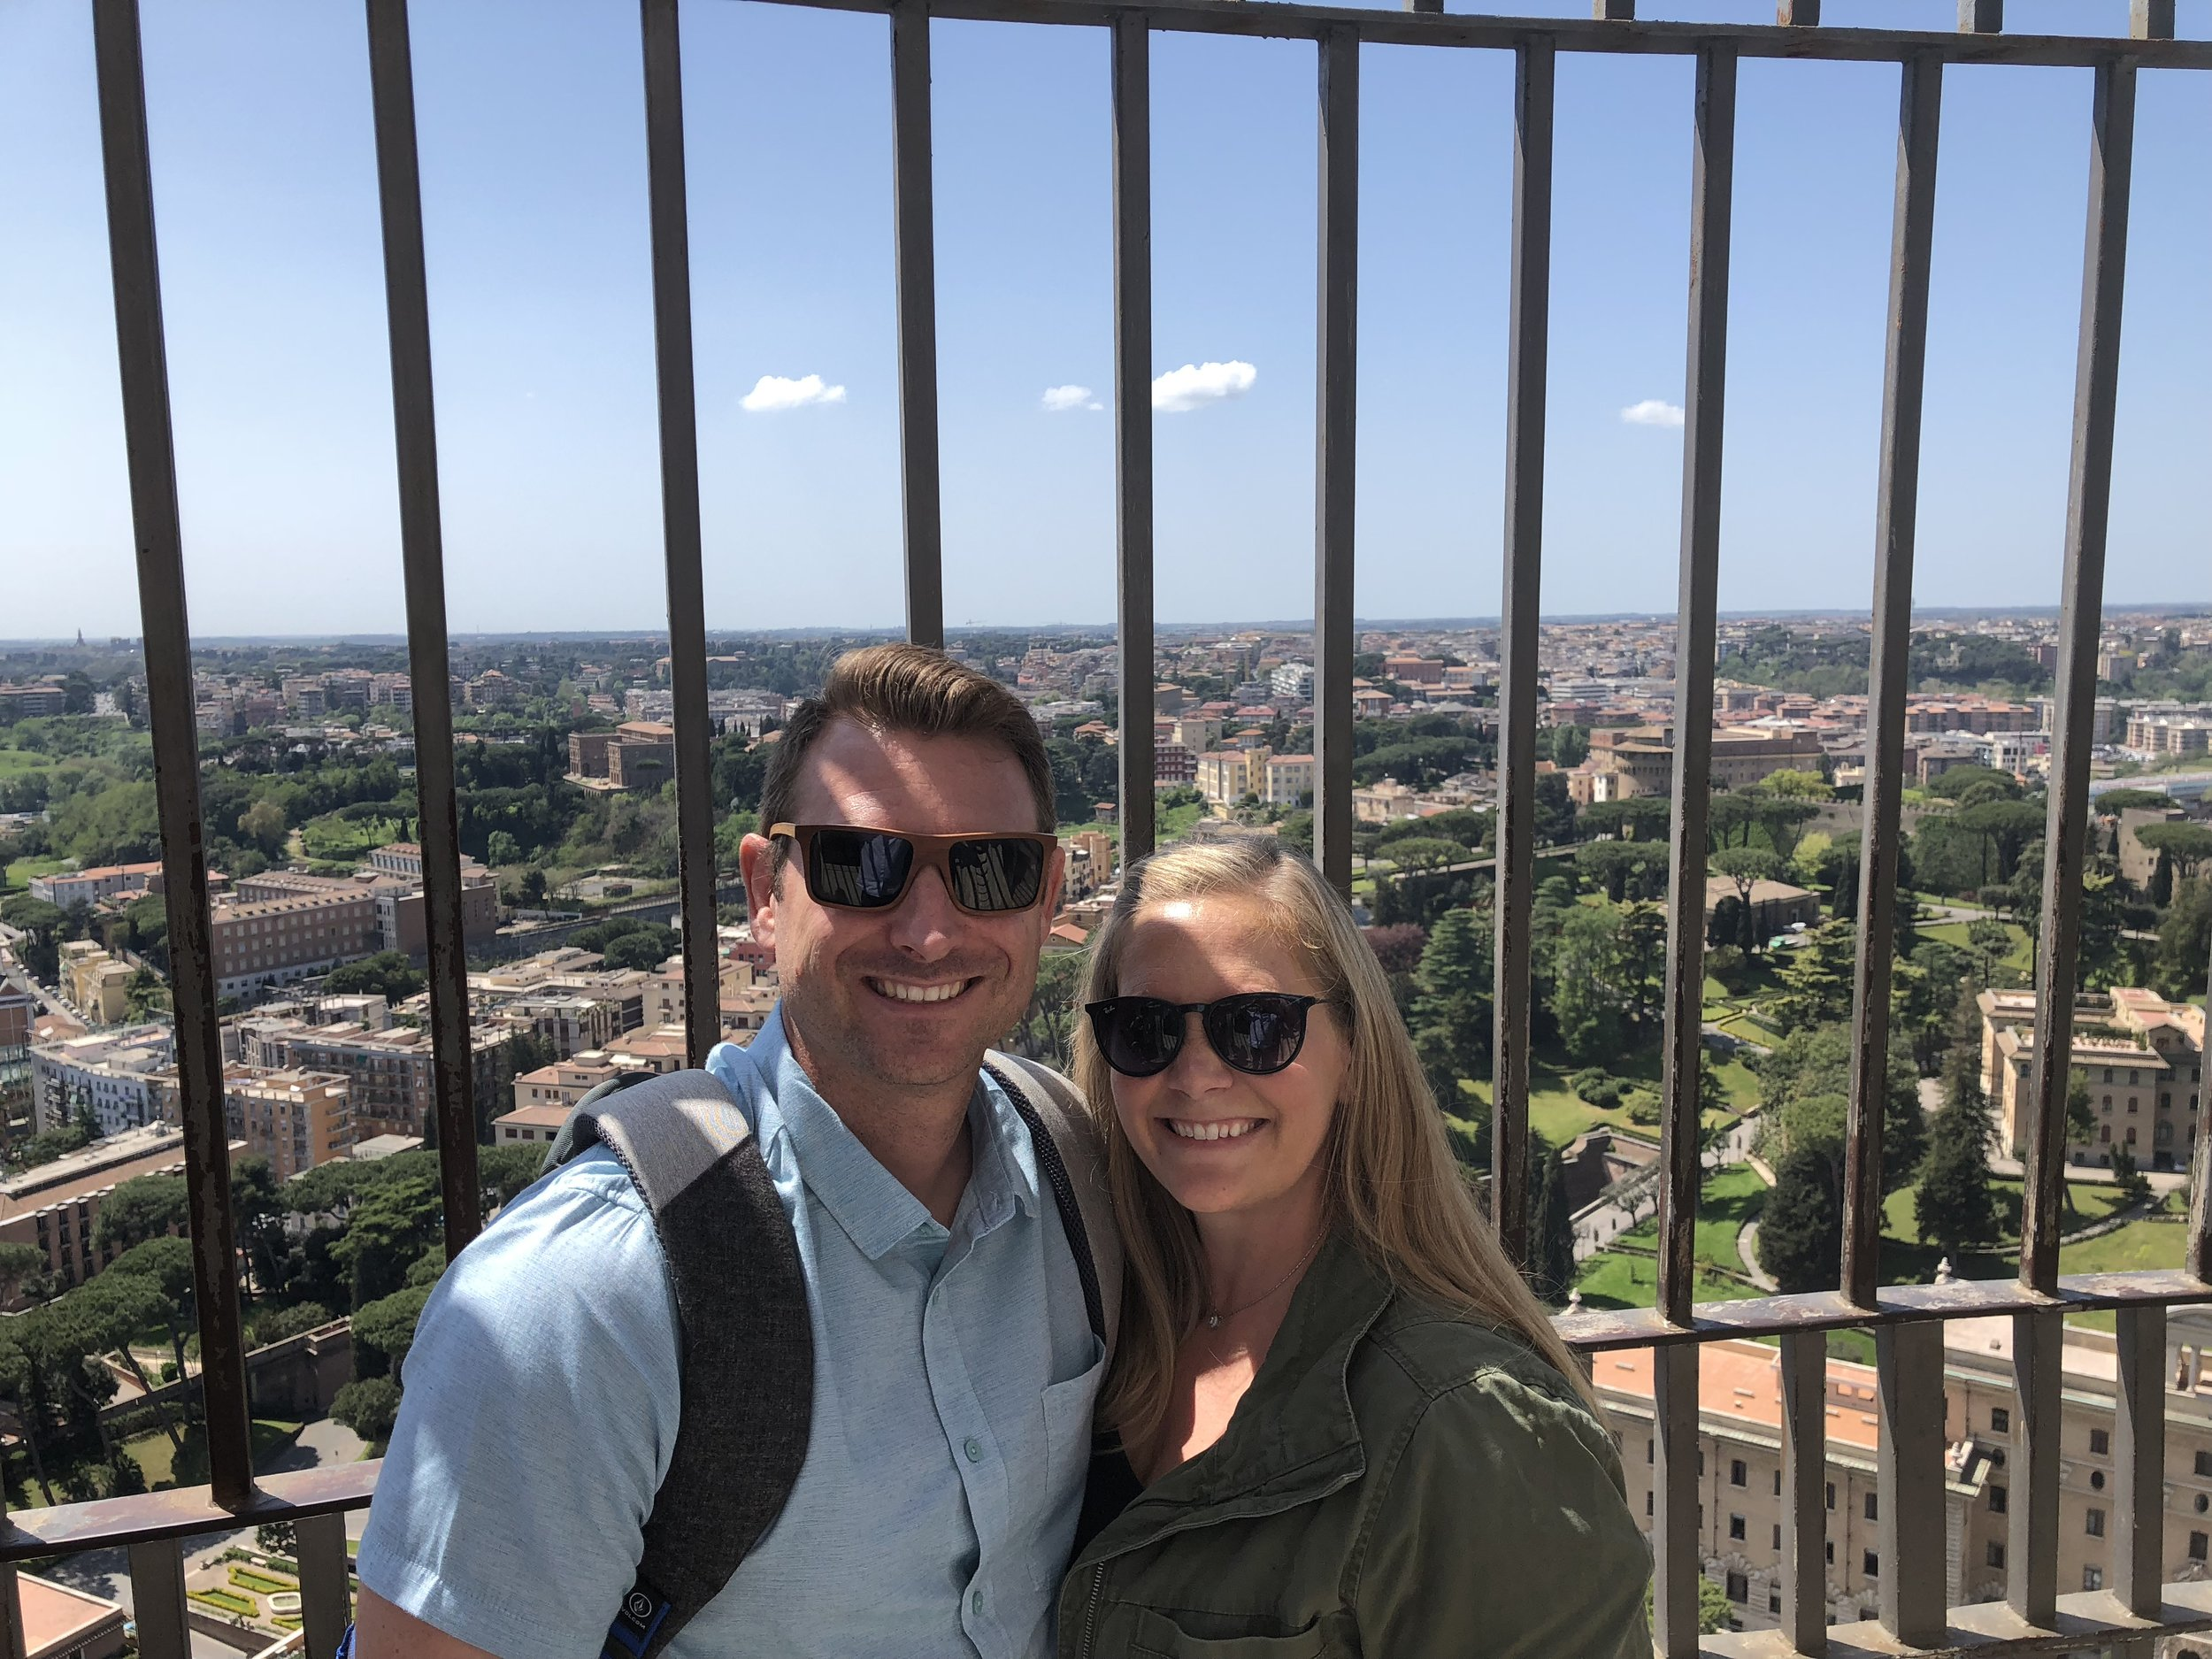 At the top of St. Peter's Basilica overlooking Rome. Those stairs ain't no joke!